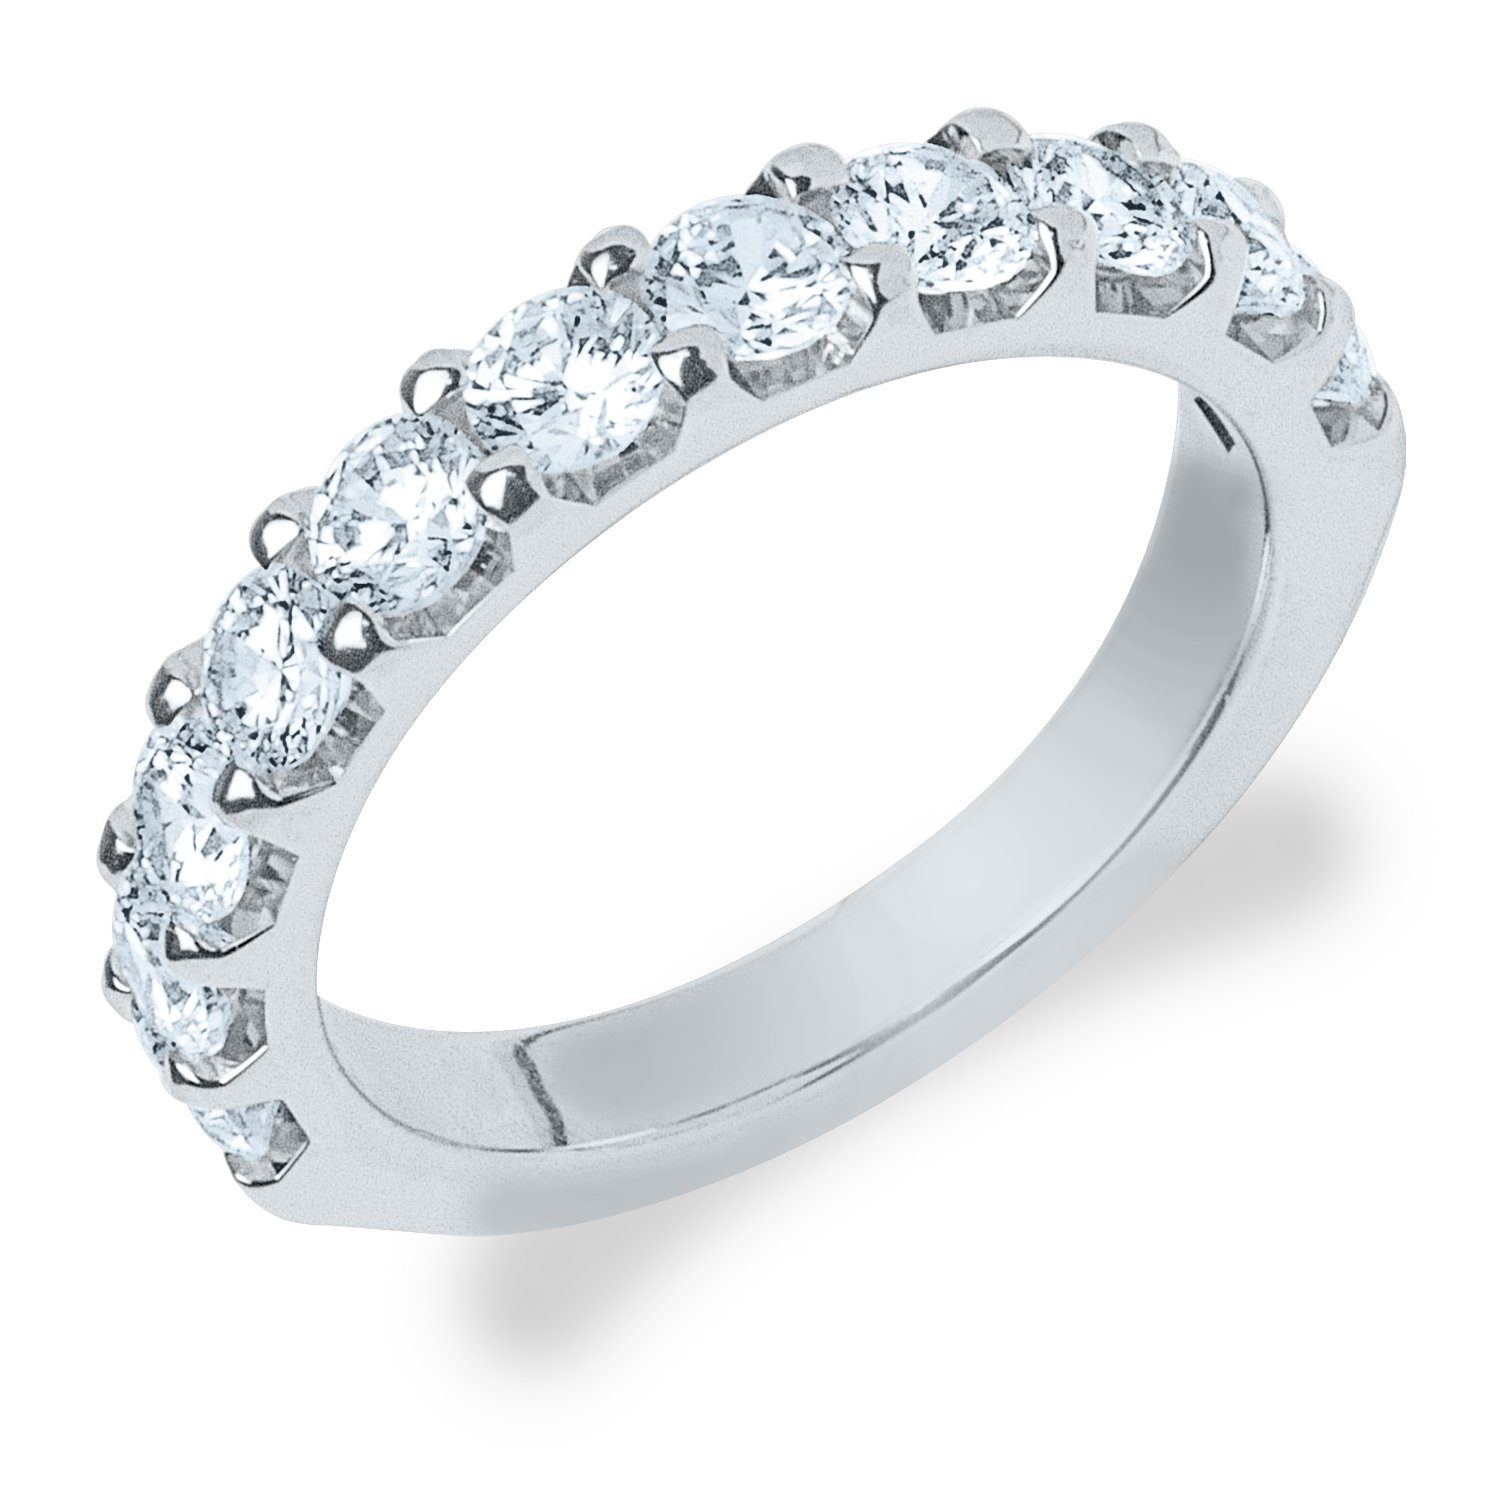 Legacy 1 1/2 CT Lab Grown Diamond Wedding Ring in 10K White Gold, Sparkling in E-F Color and VS Clarity- Finger Size 4.5